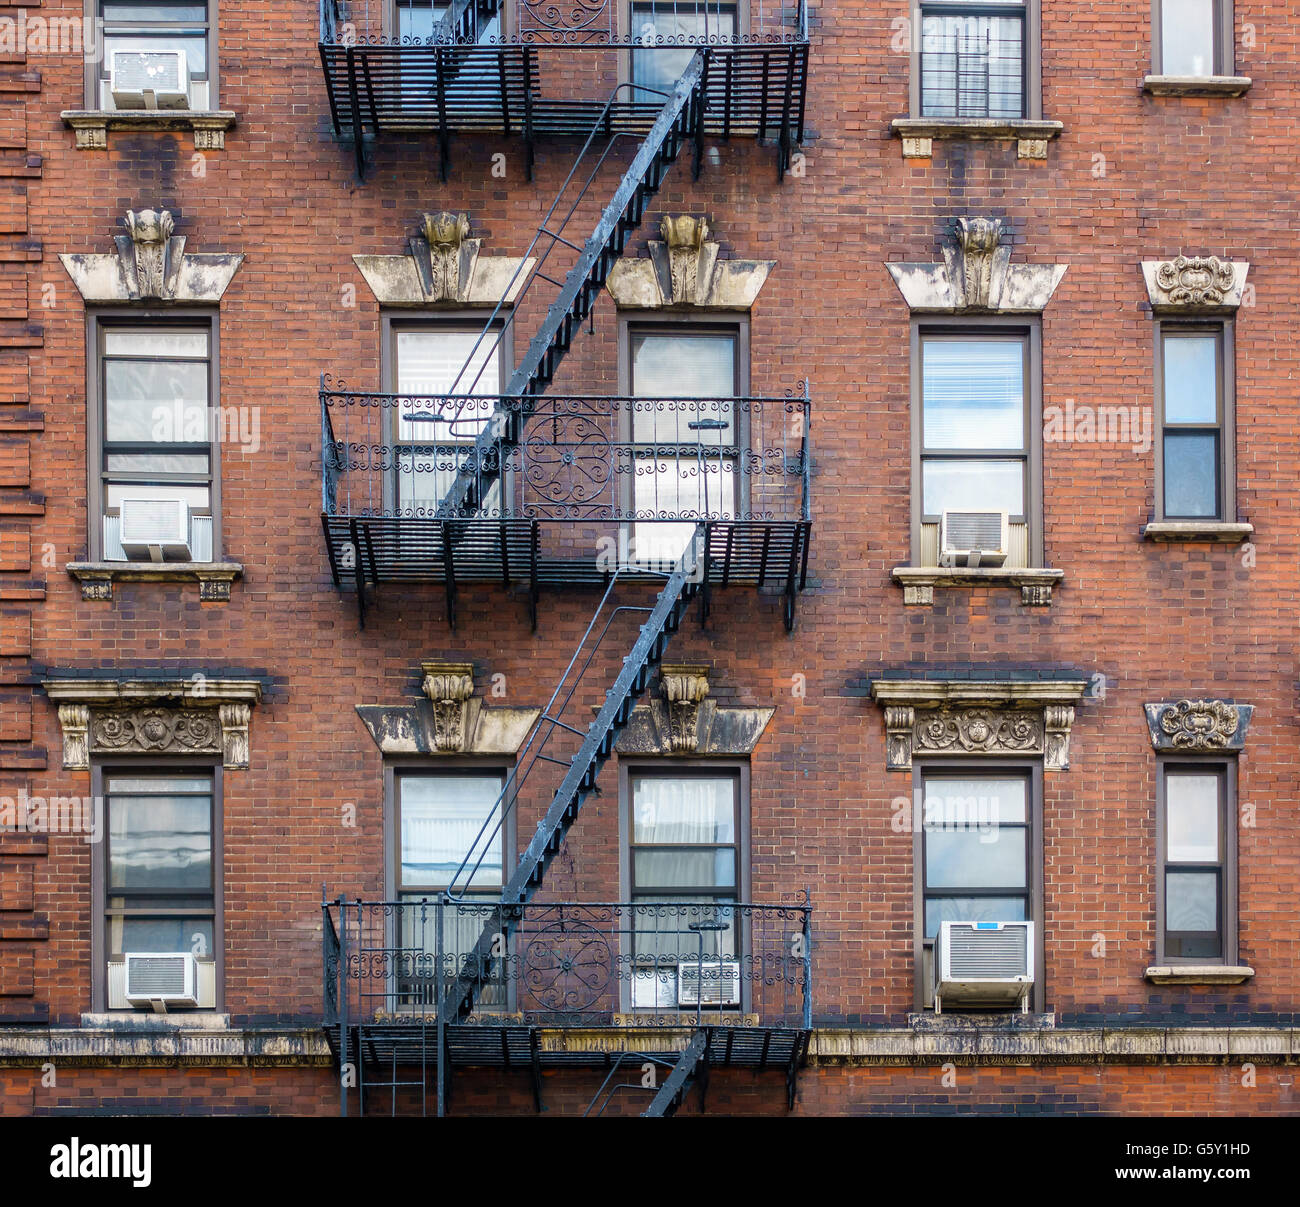 Cheap Apartments Outside Bricks: Apartment Building Exterior Steps Stock Photos & Apartment